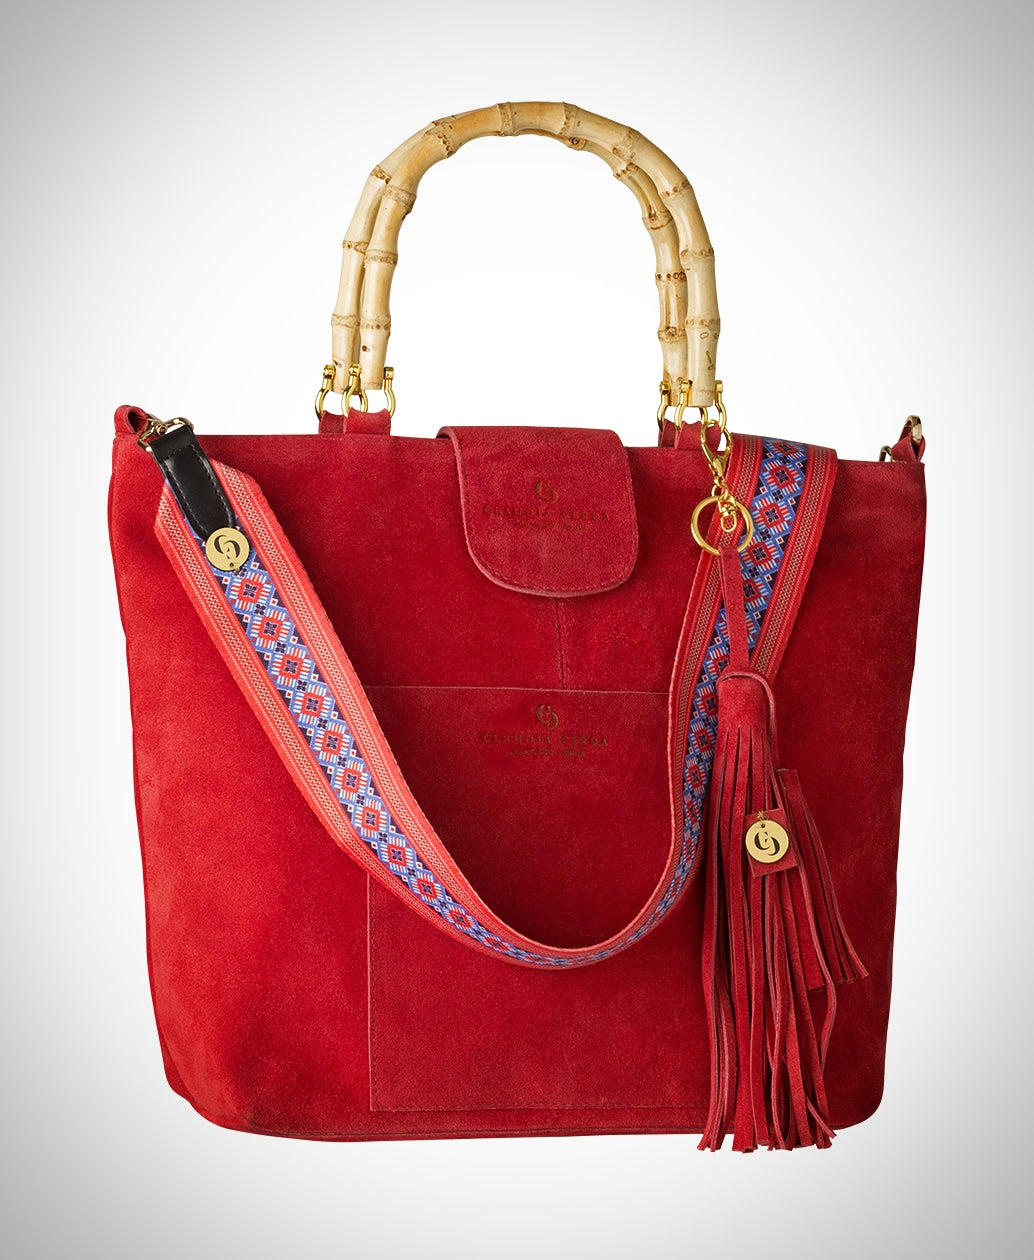 Coral red Voyage Bag - Claudia Cerda